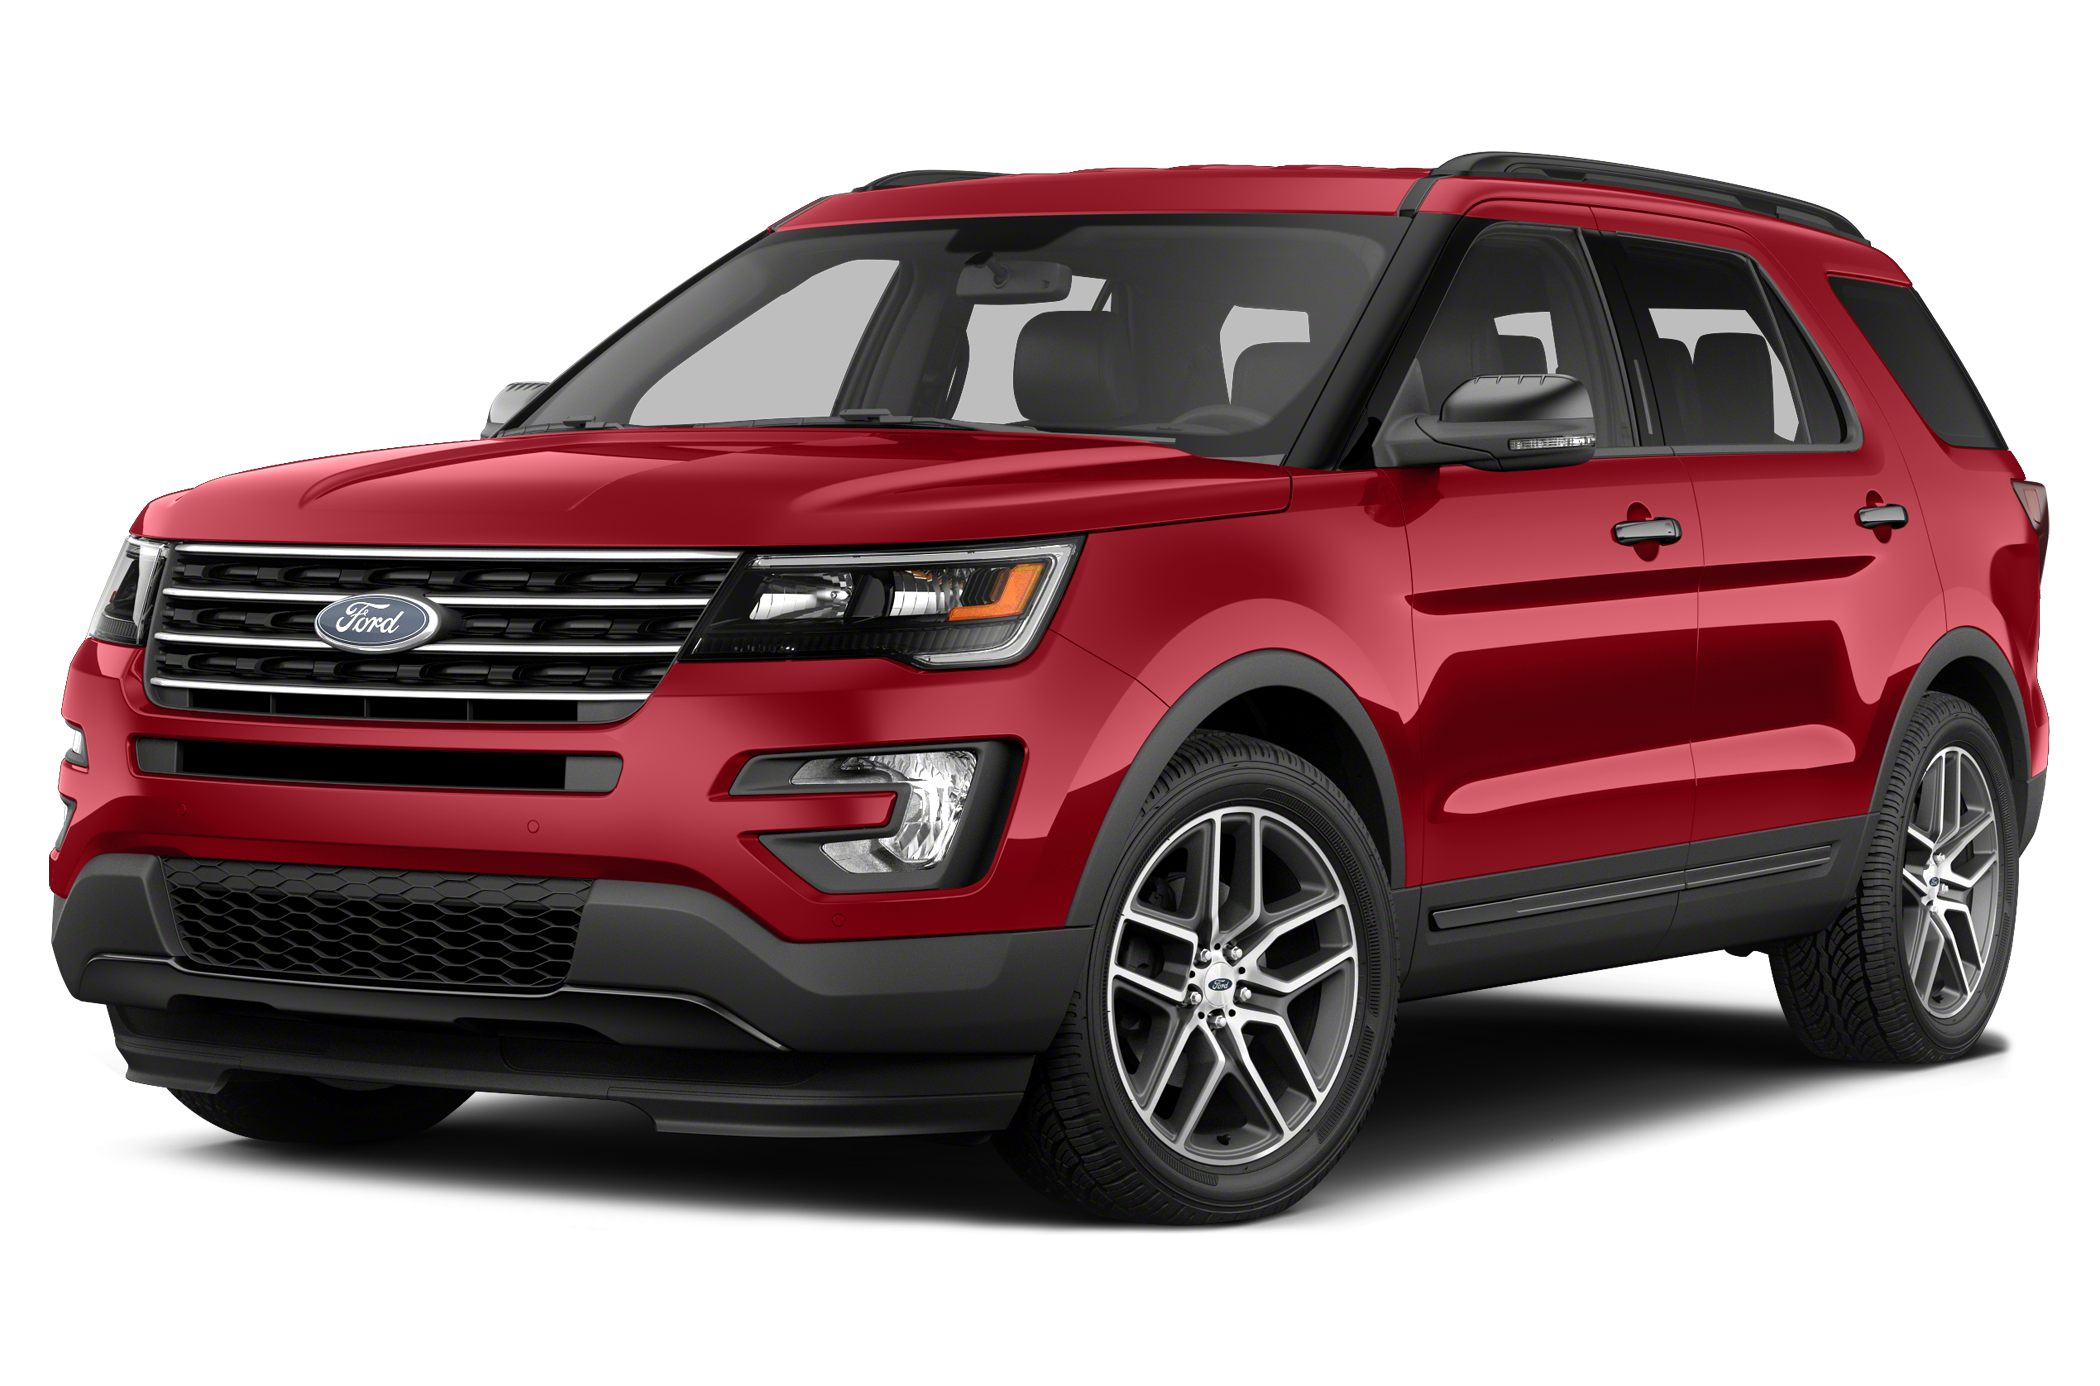 2016 ford explorer first drive w video. Black Bedroom Furniture Sets. Home Design Ideas